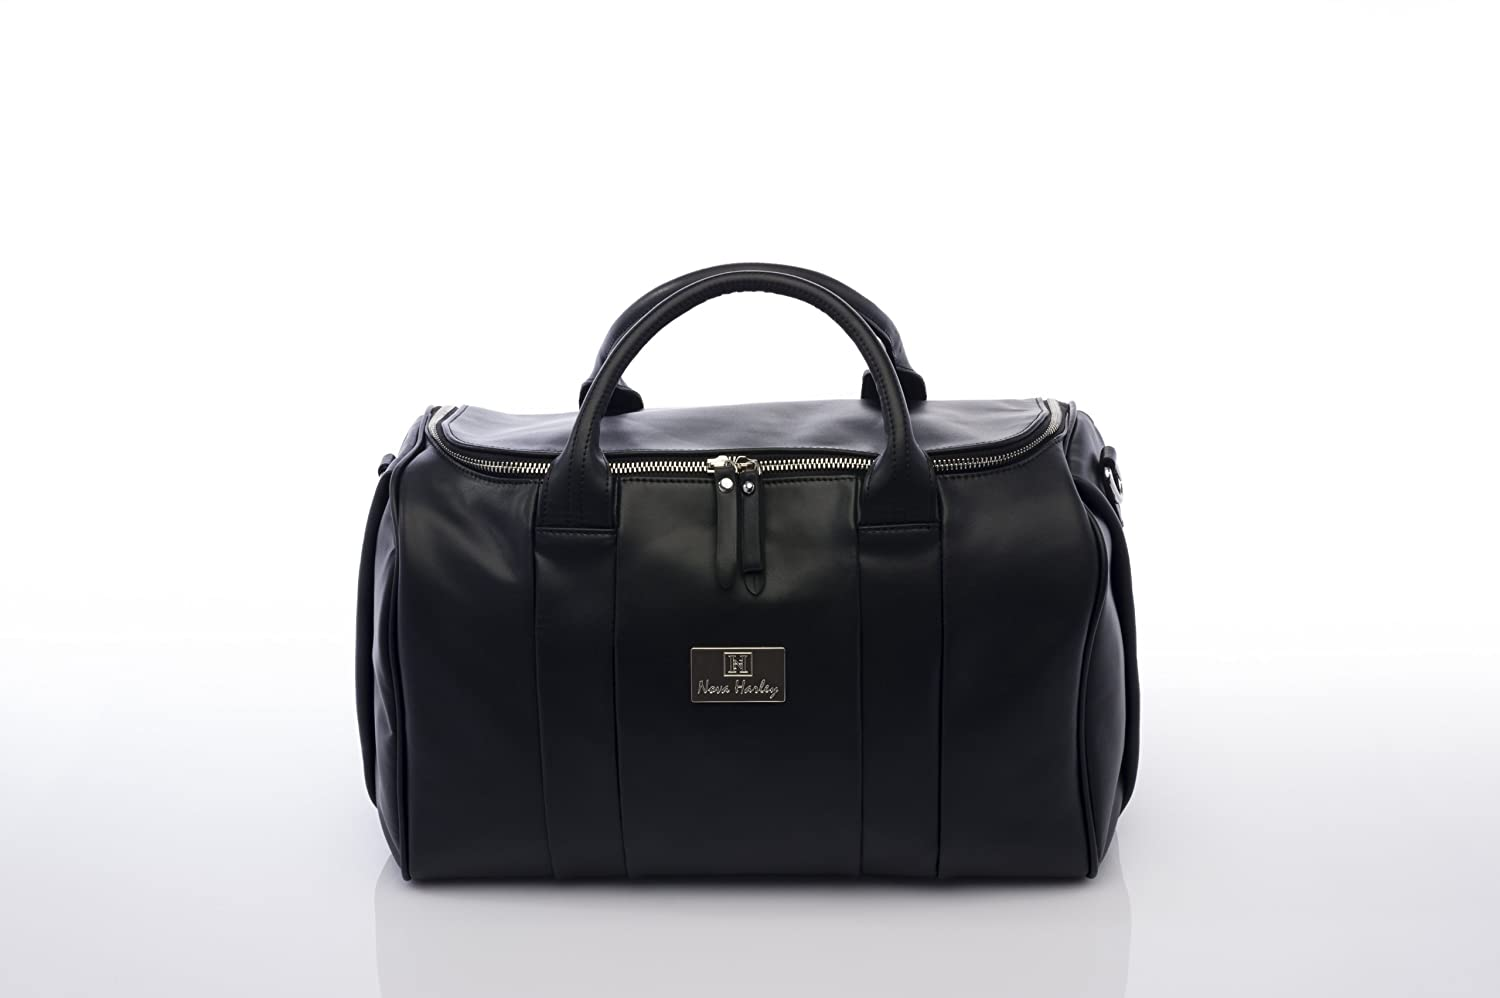 9c883beec9e Nova Harley Luxury Changing Bag (Manhattan)  Amazon.co.uk  Baby